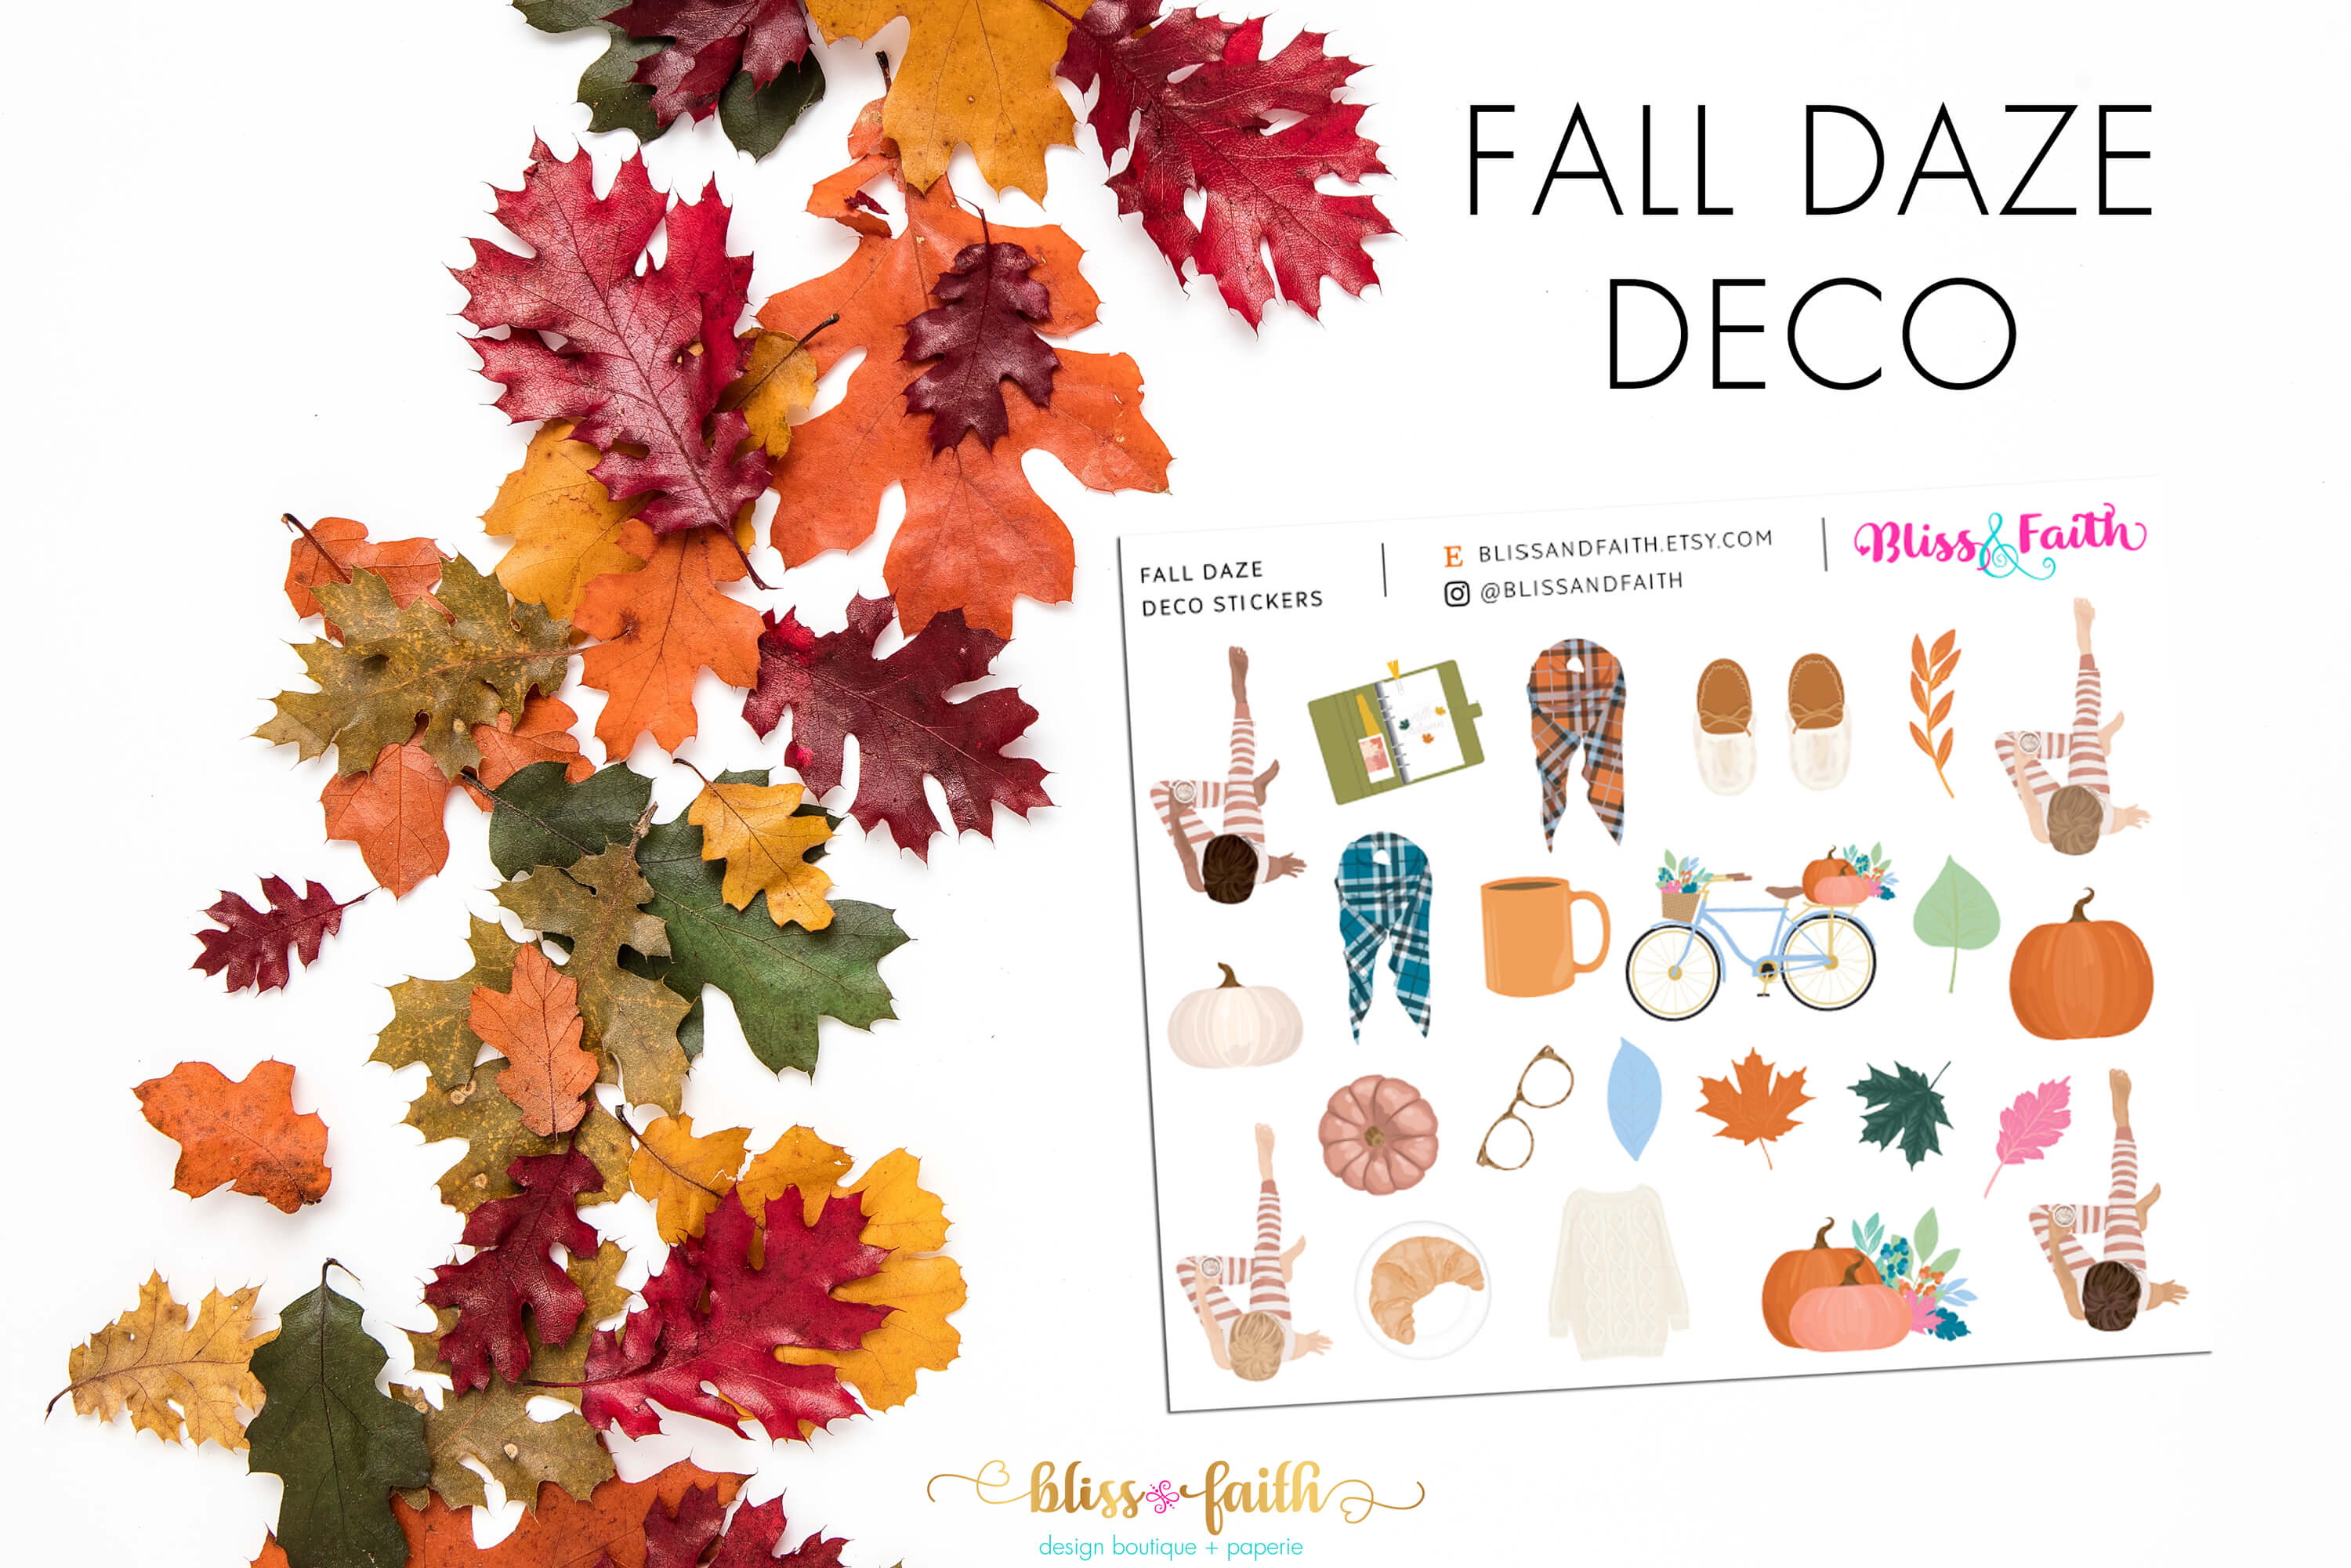 Fall Daze Deco Stickers | shop.blissandfaith.com